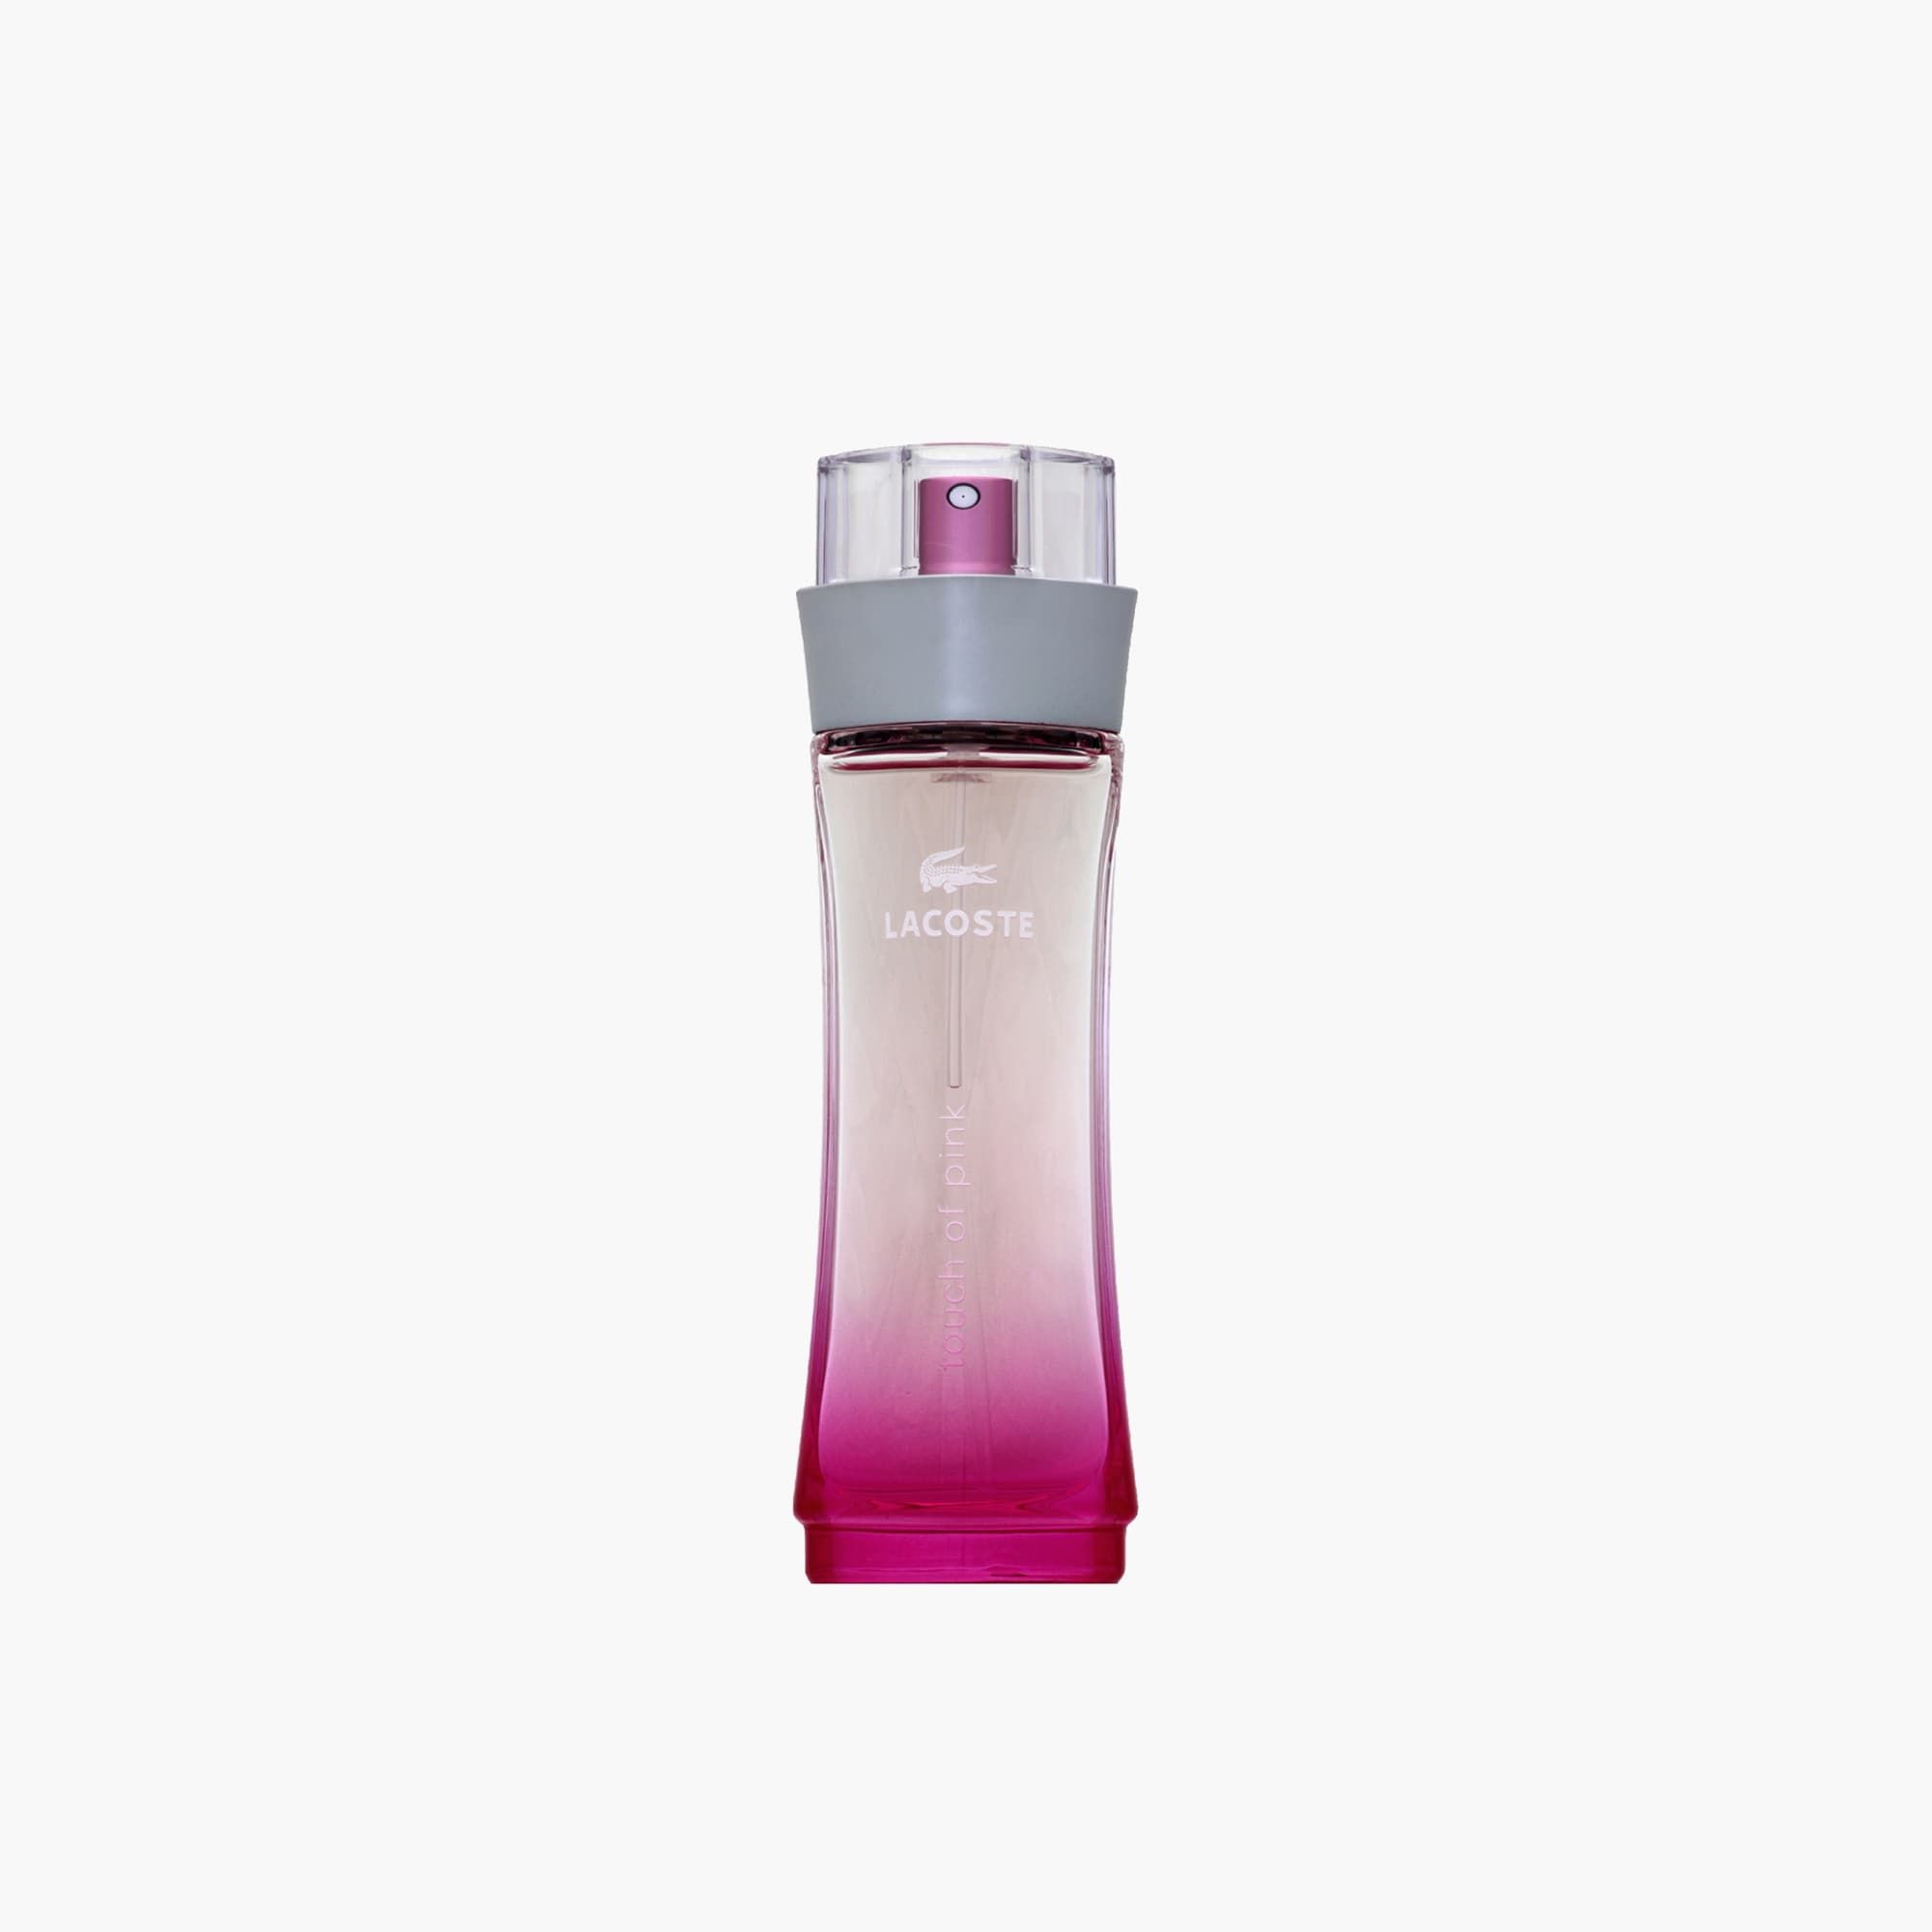 Touch of Pink Eau de Toilette 50ml